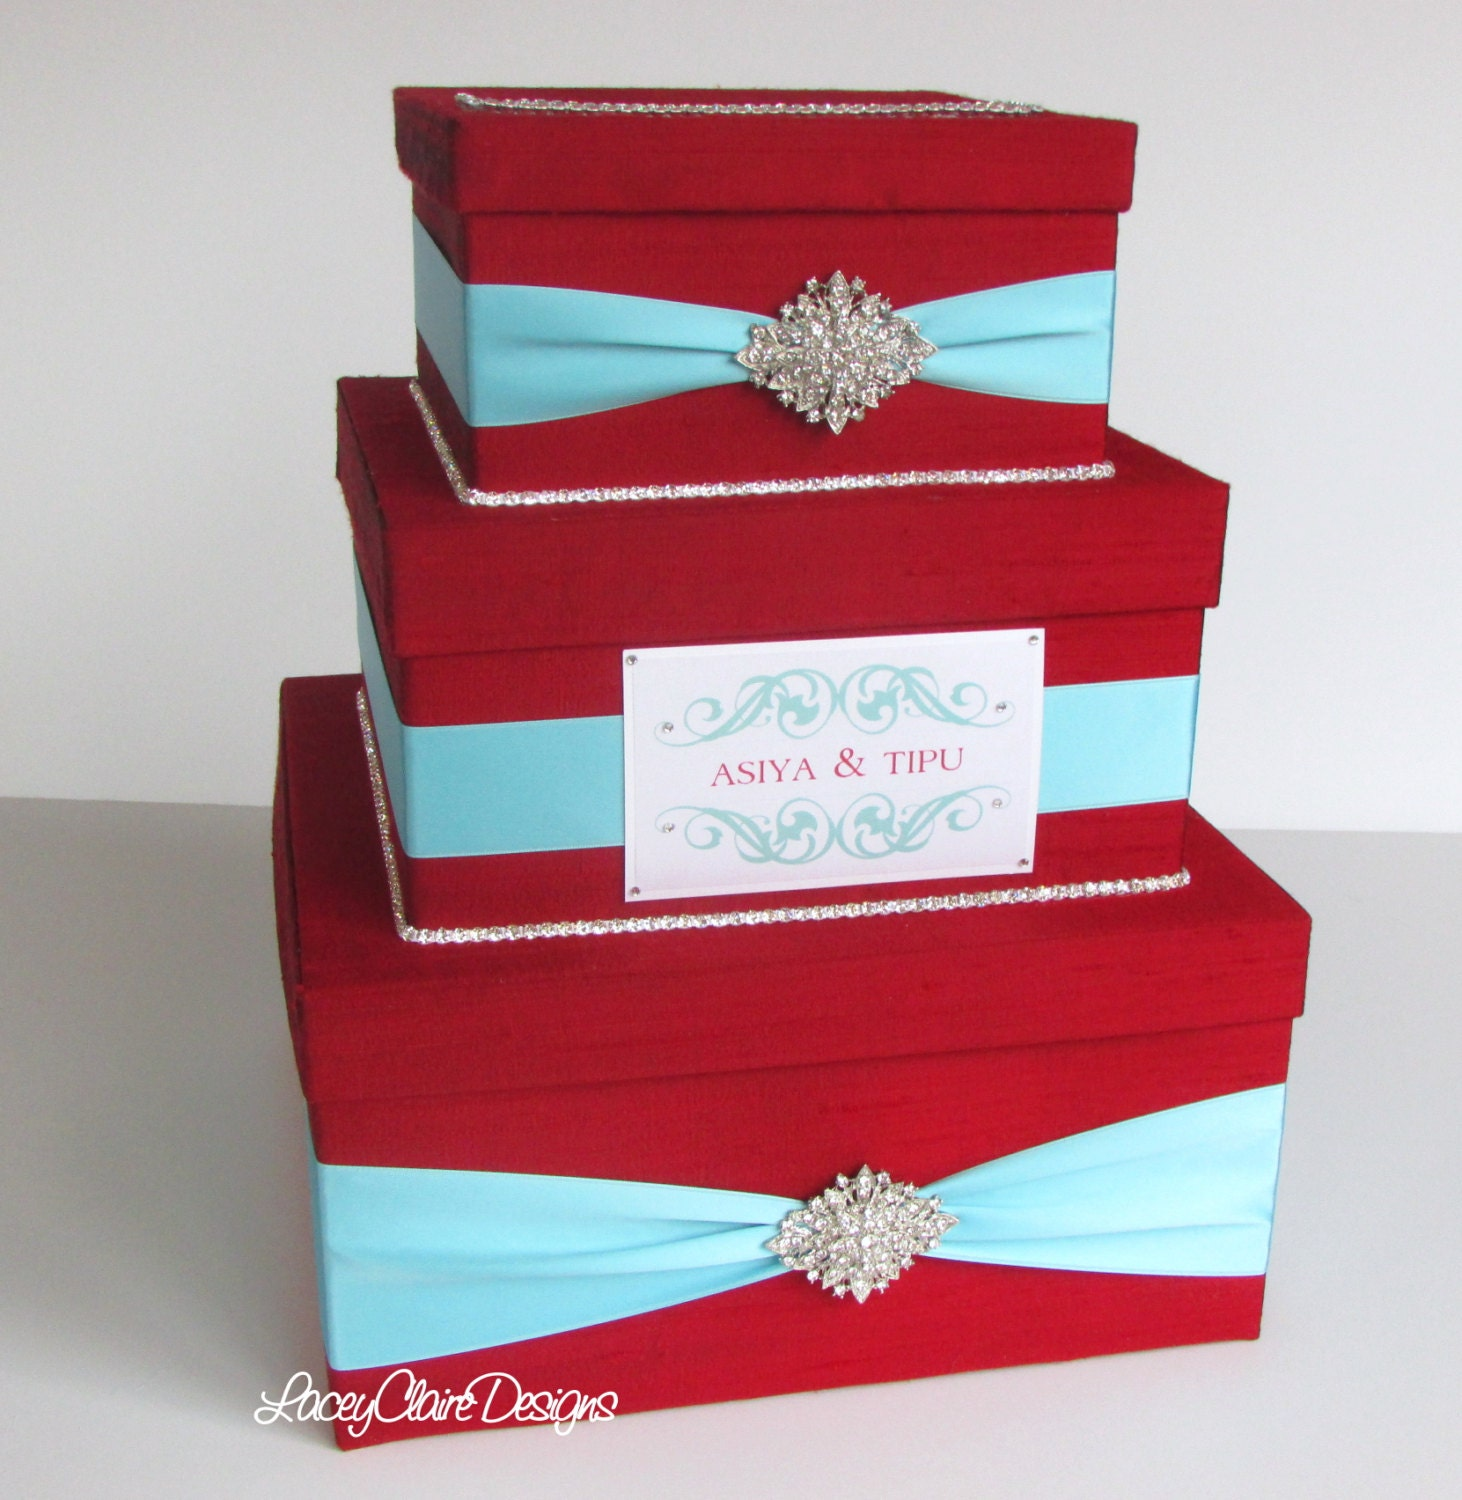 Wedding Gift Box Etsy : Wedding Gift Box Card Box Money Holder Envelope Reception